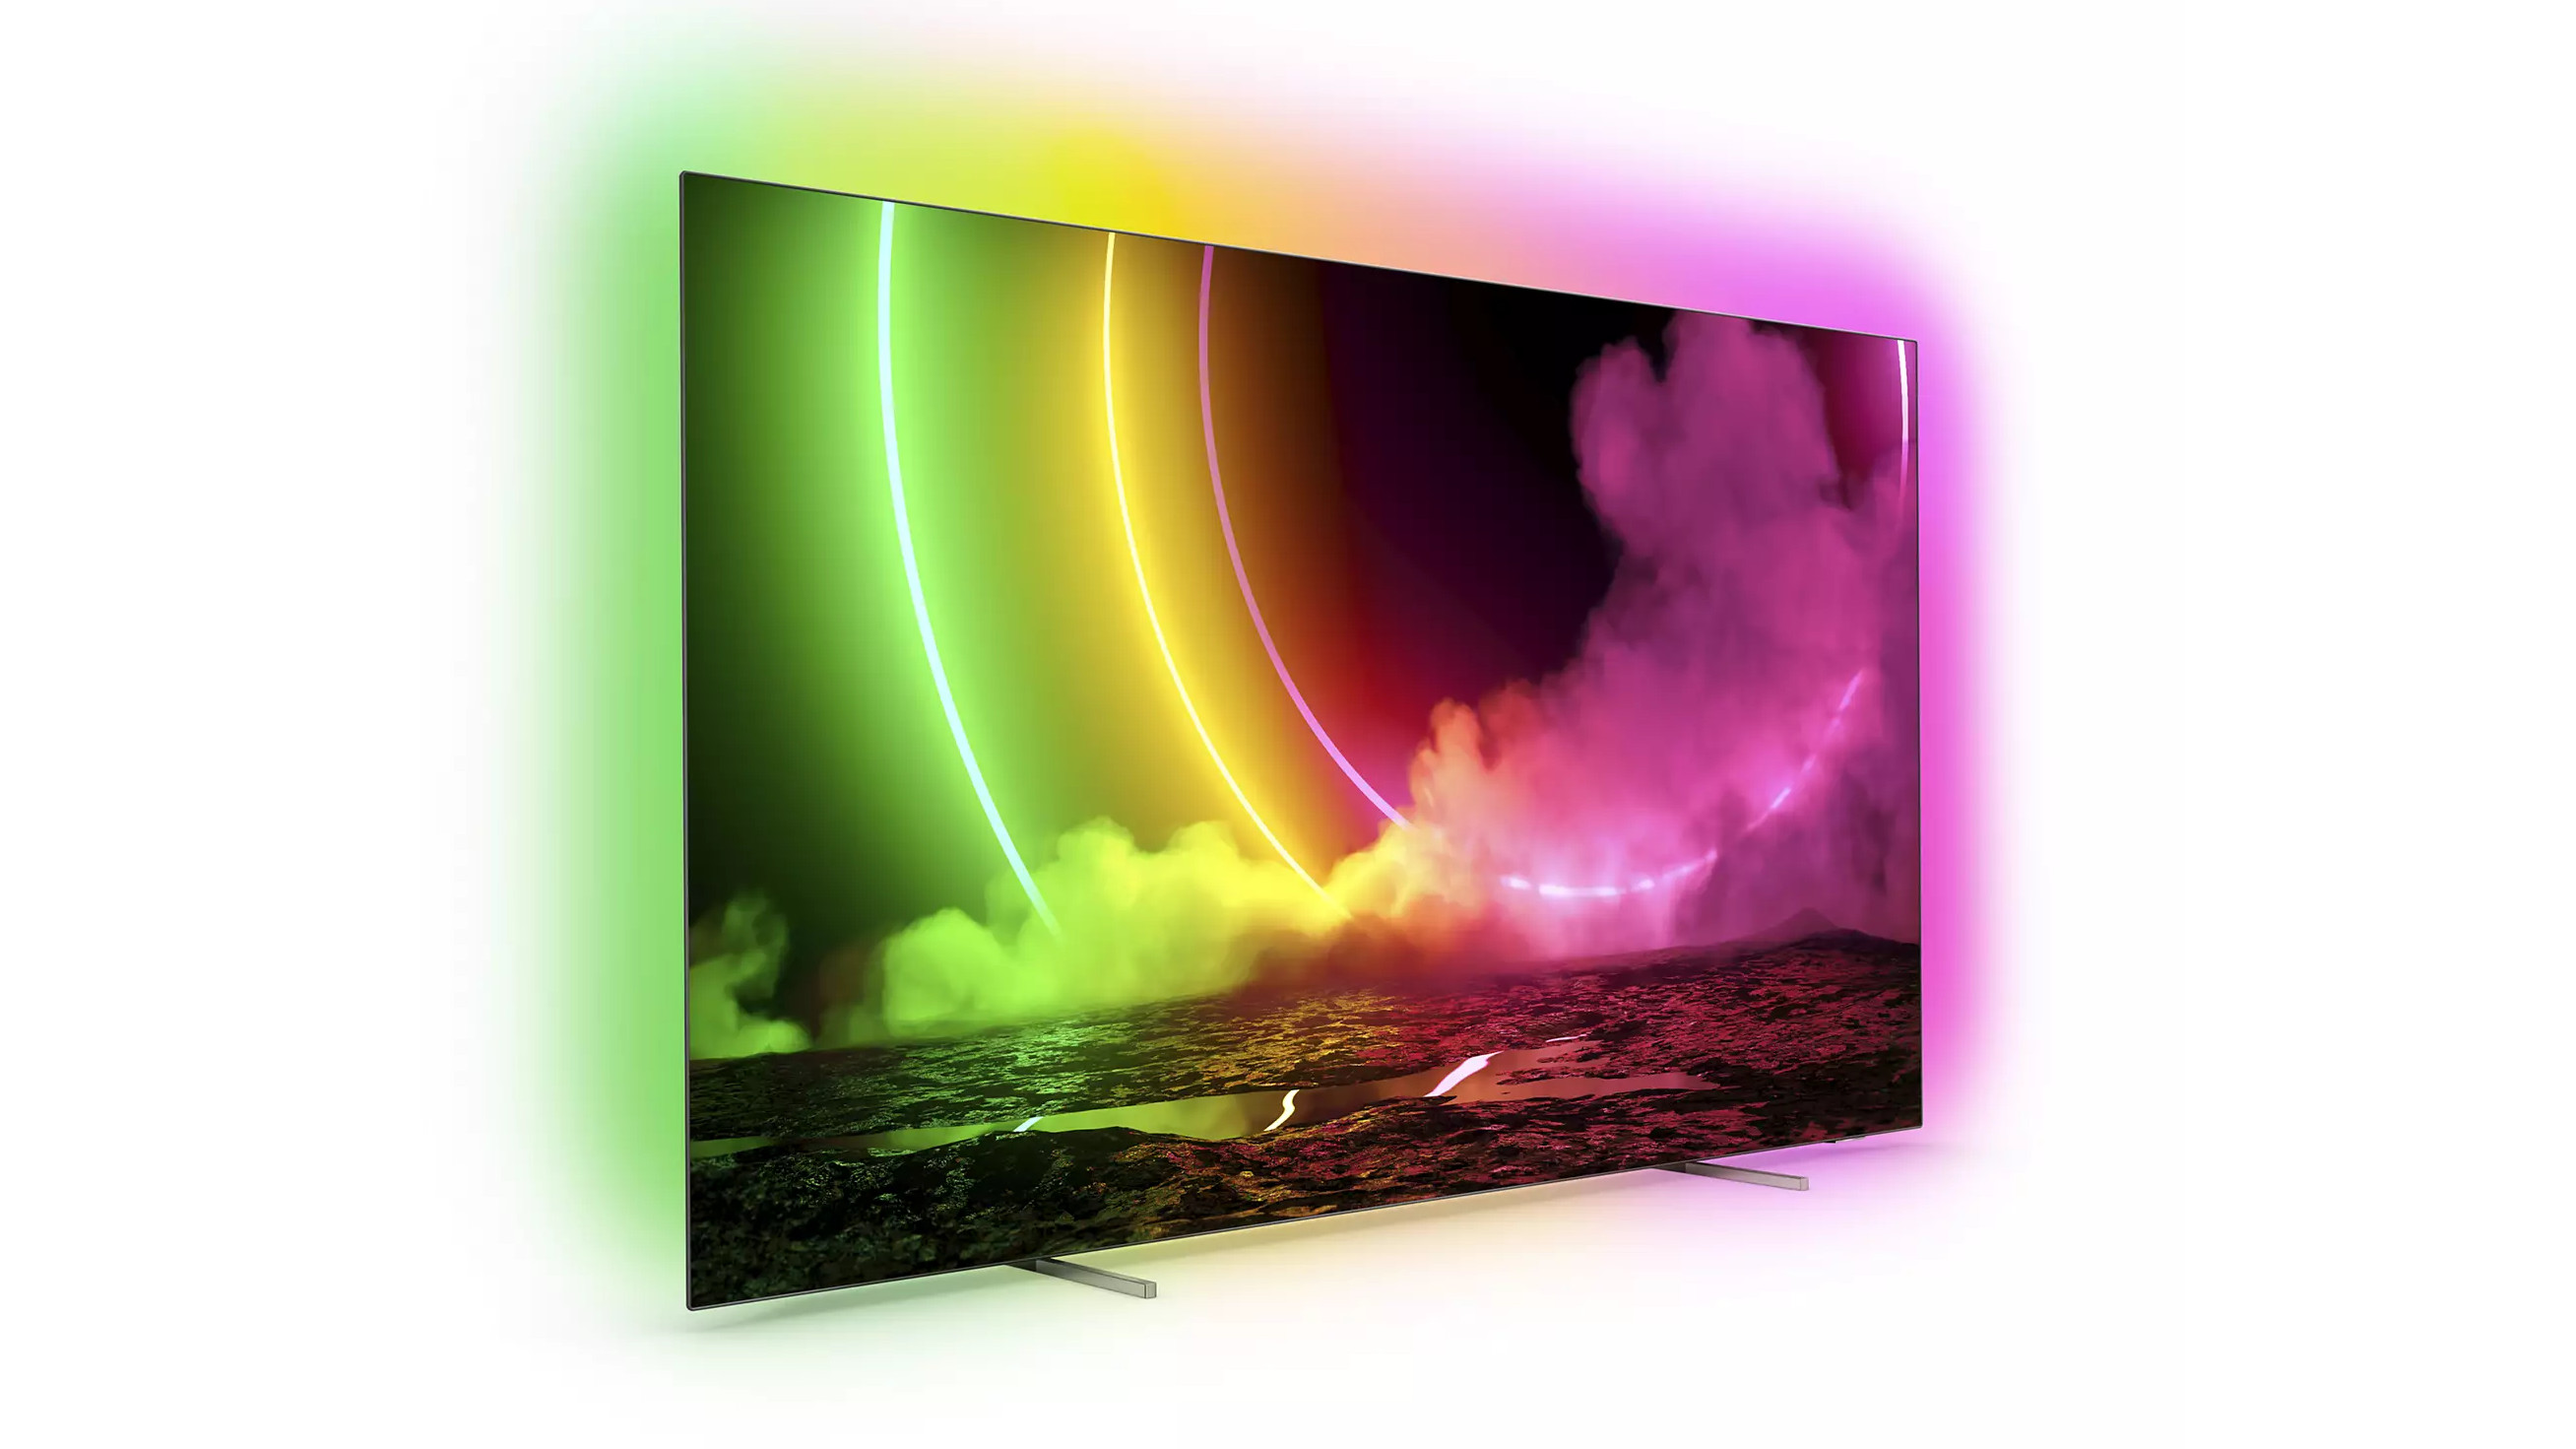 The Philips OLED 806